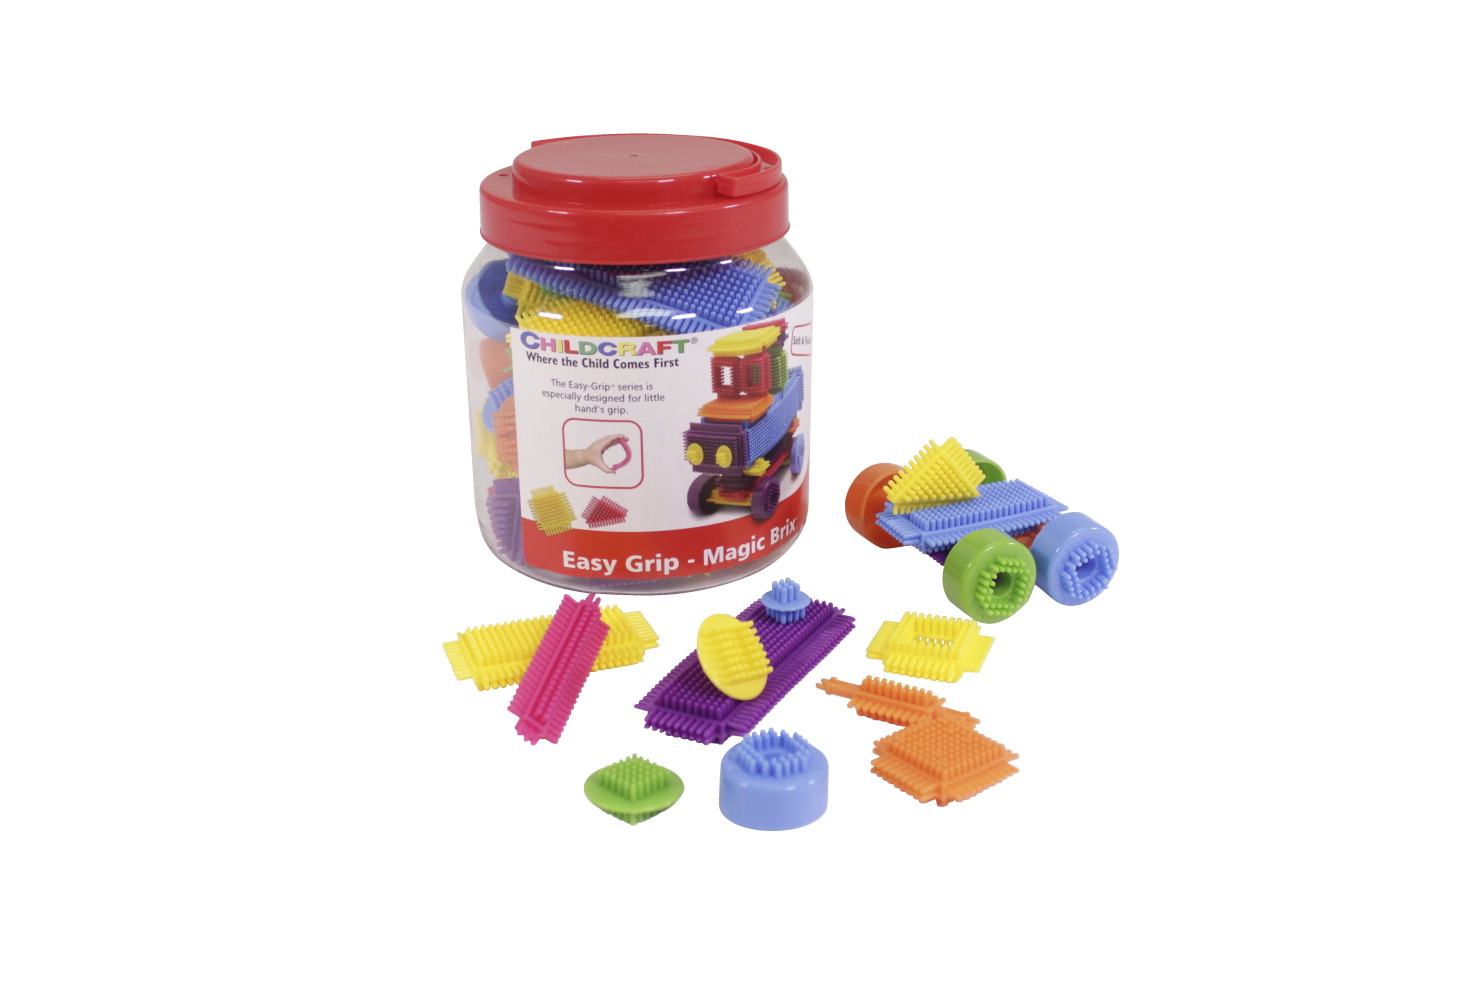 Childcraft Manipulative Magic Brix, Assorted Colors, Set of 72